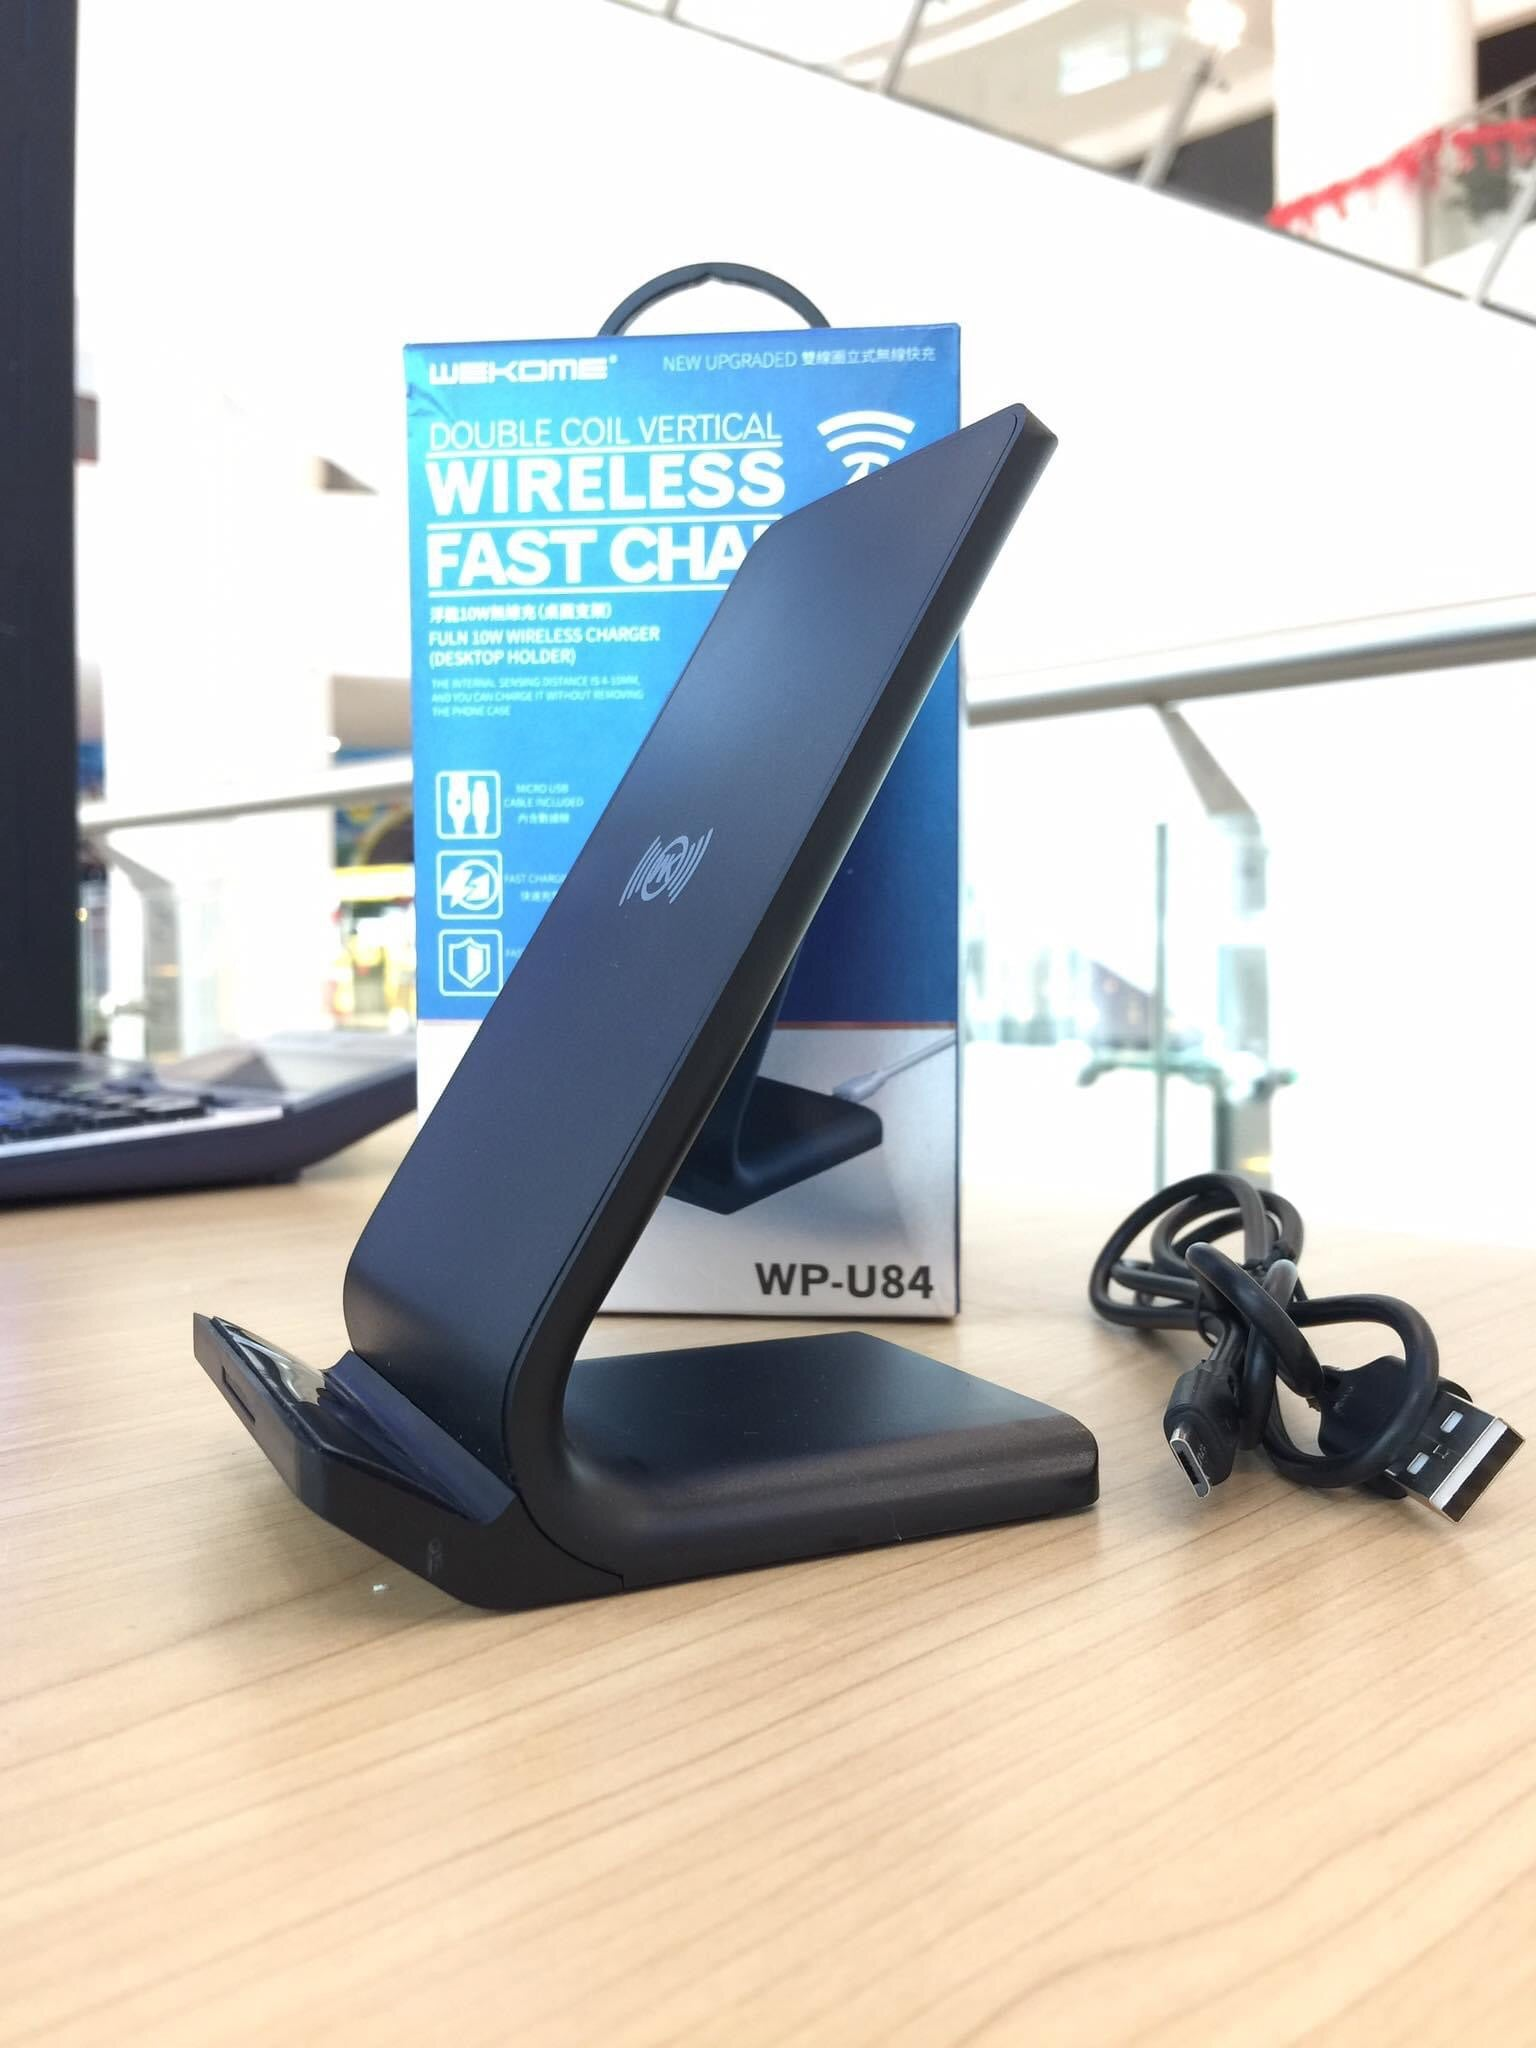 WP-U84 Double Coil Vertical Wireless Fast Charger